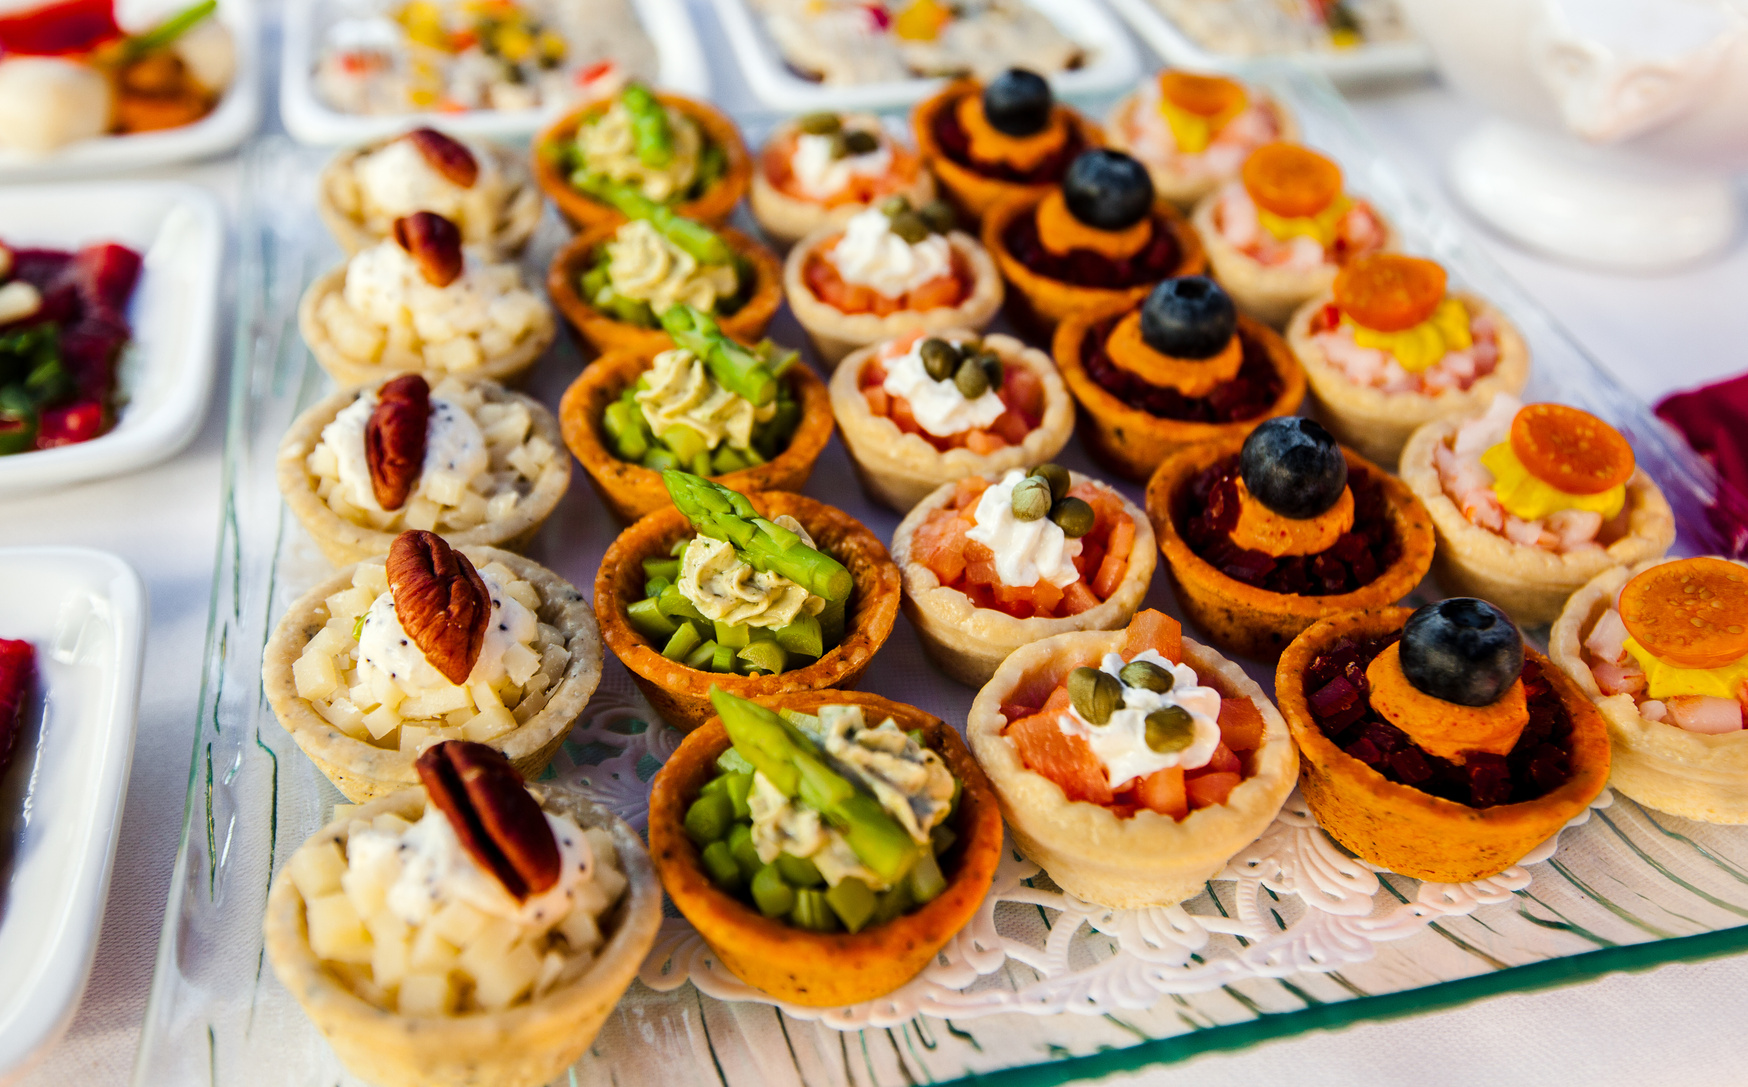 Essensideen Schnell Fingerfood Essence Catering Catering Und Partyservice